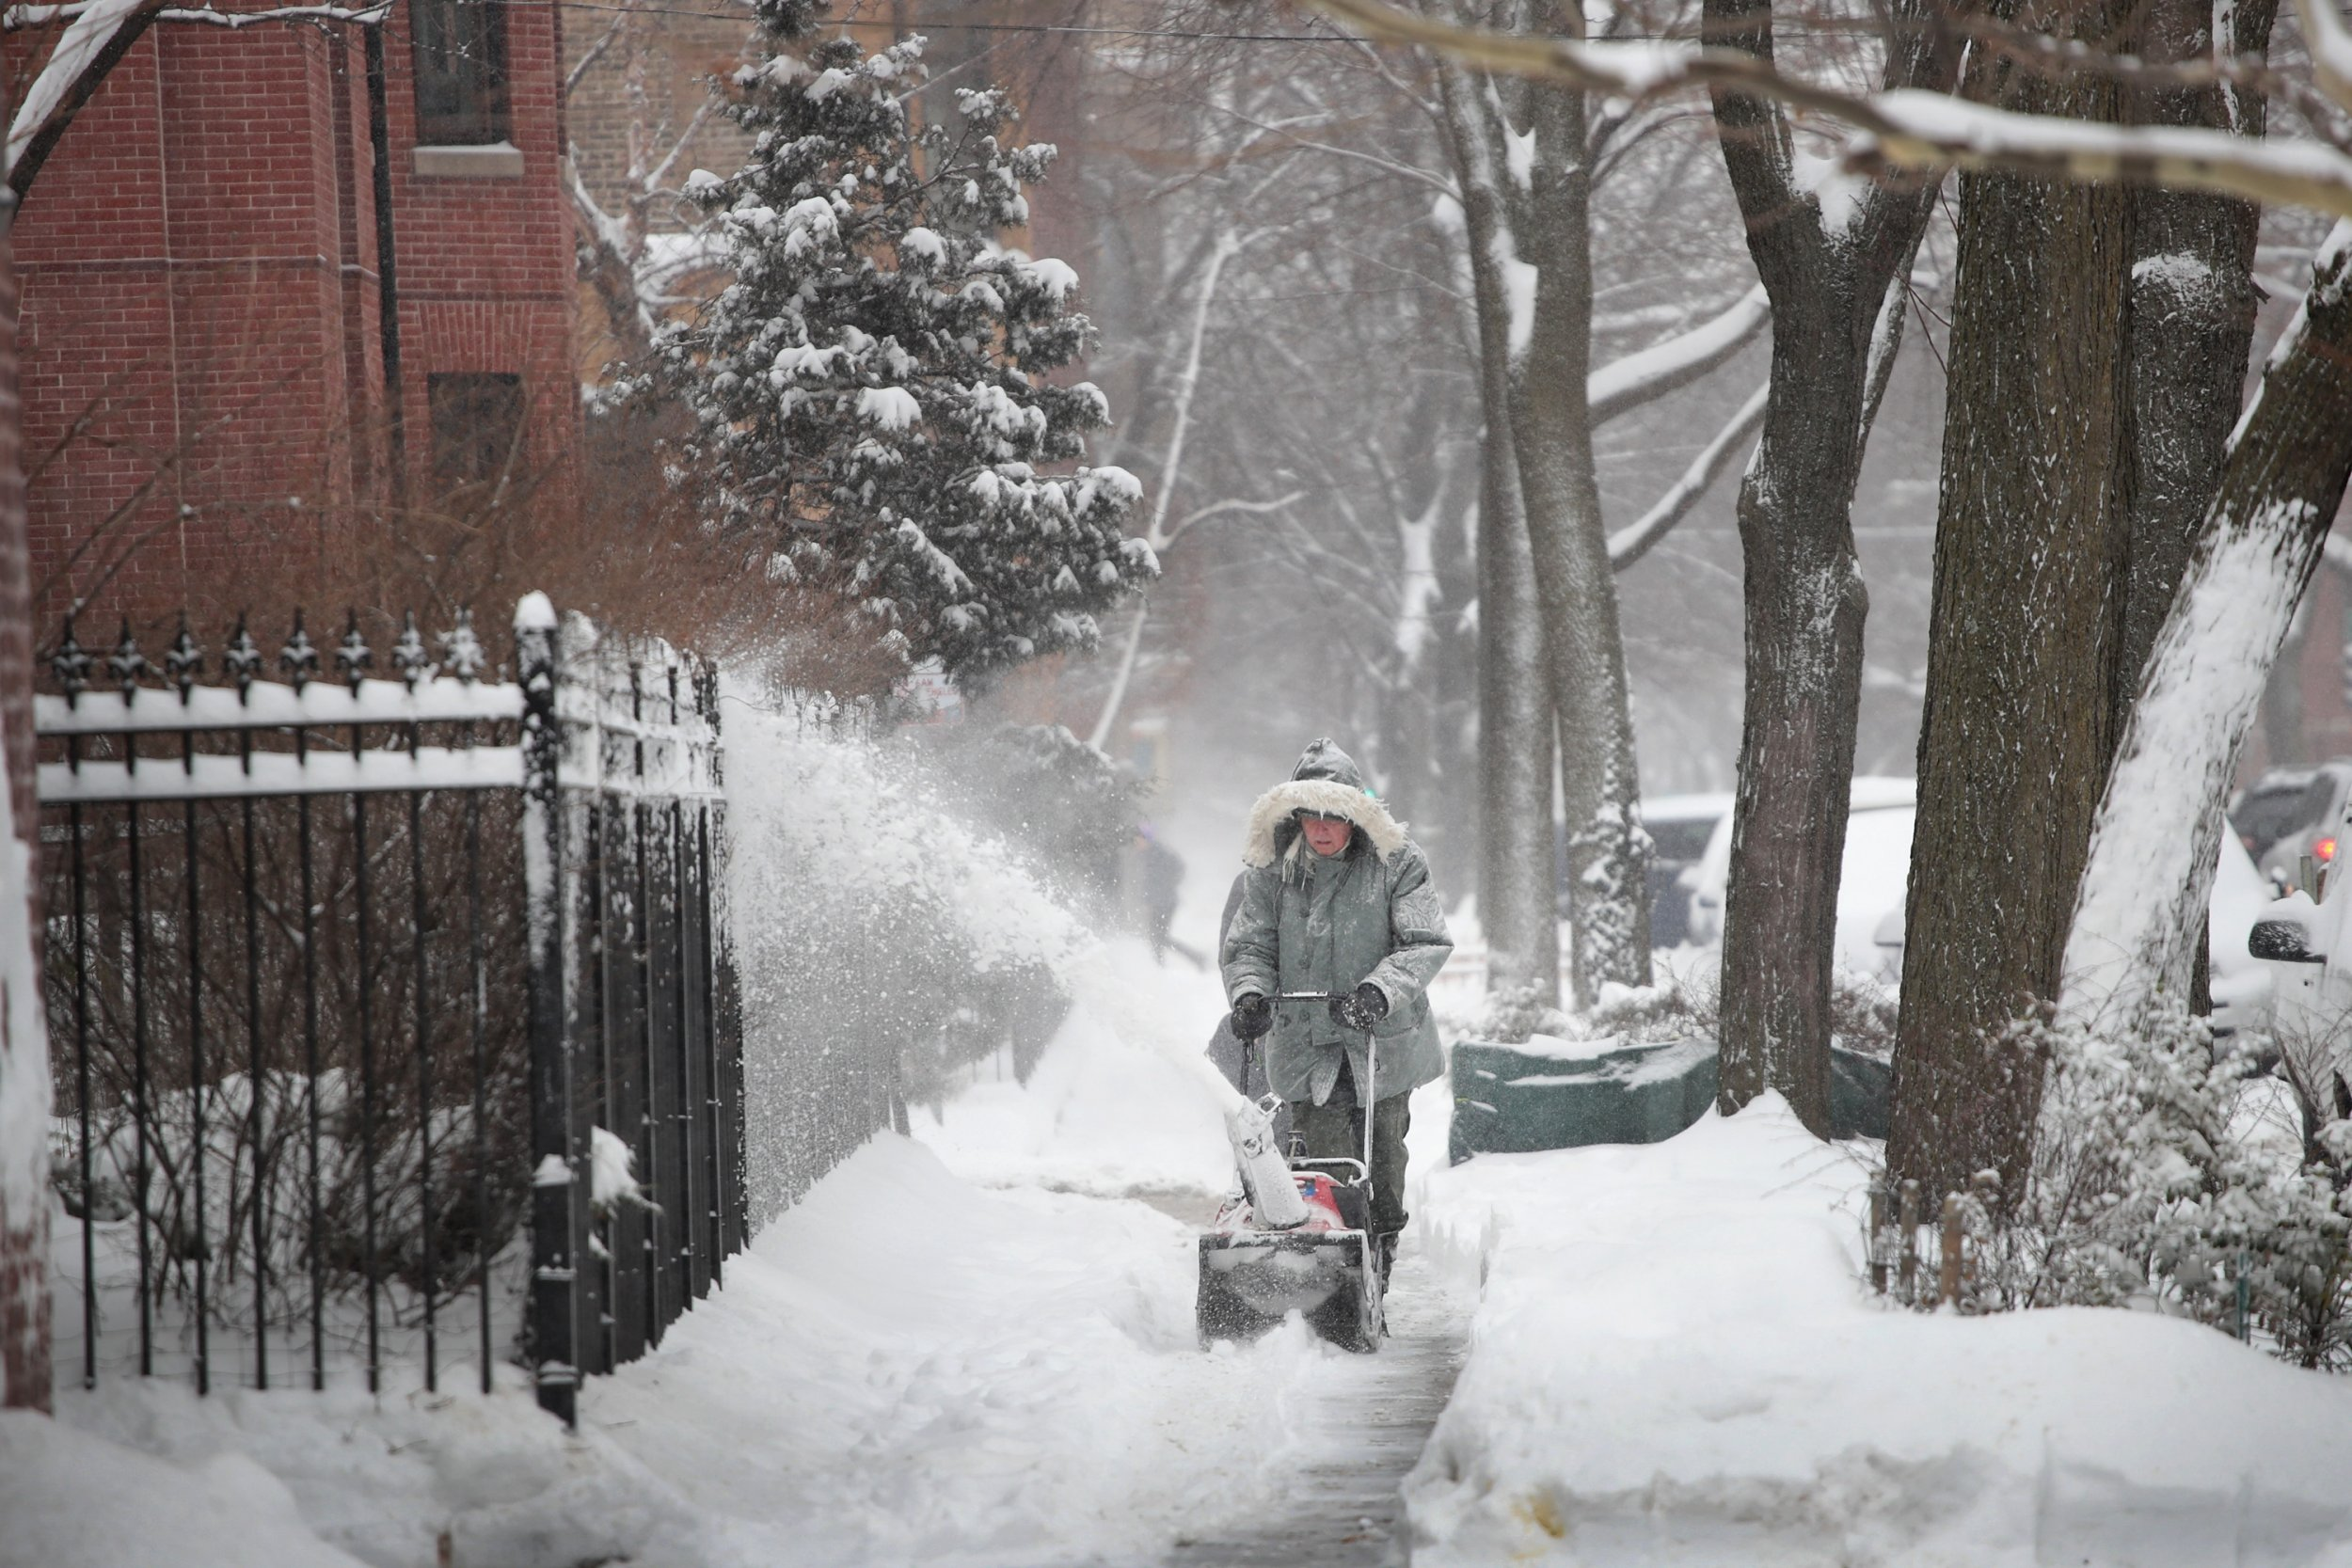 Winter Storm: Winter Storm Uma Could Drop Up To 12 Inches Of Snow In The